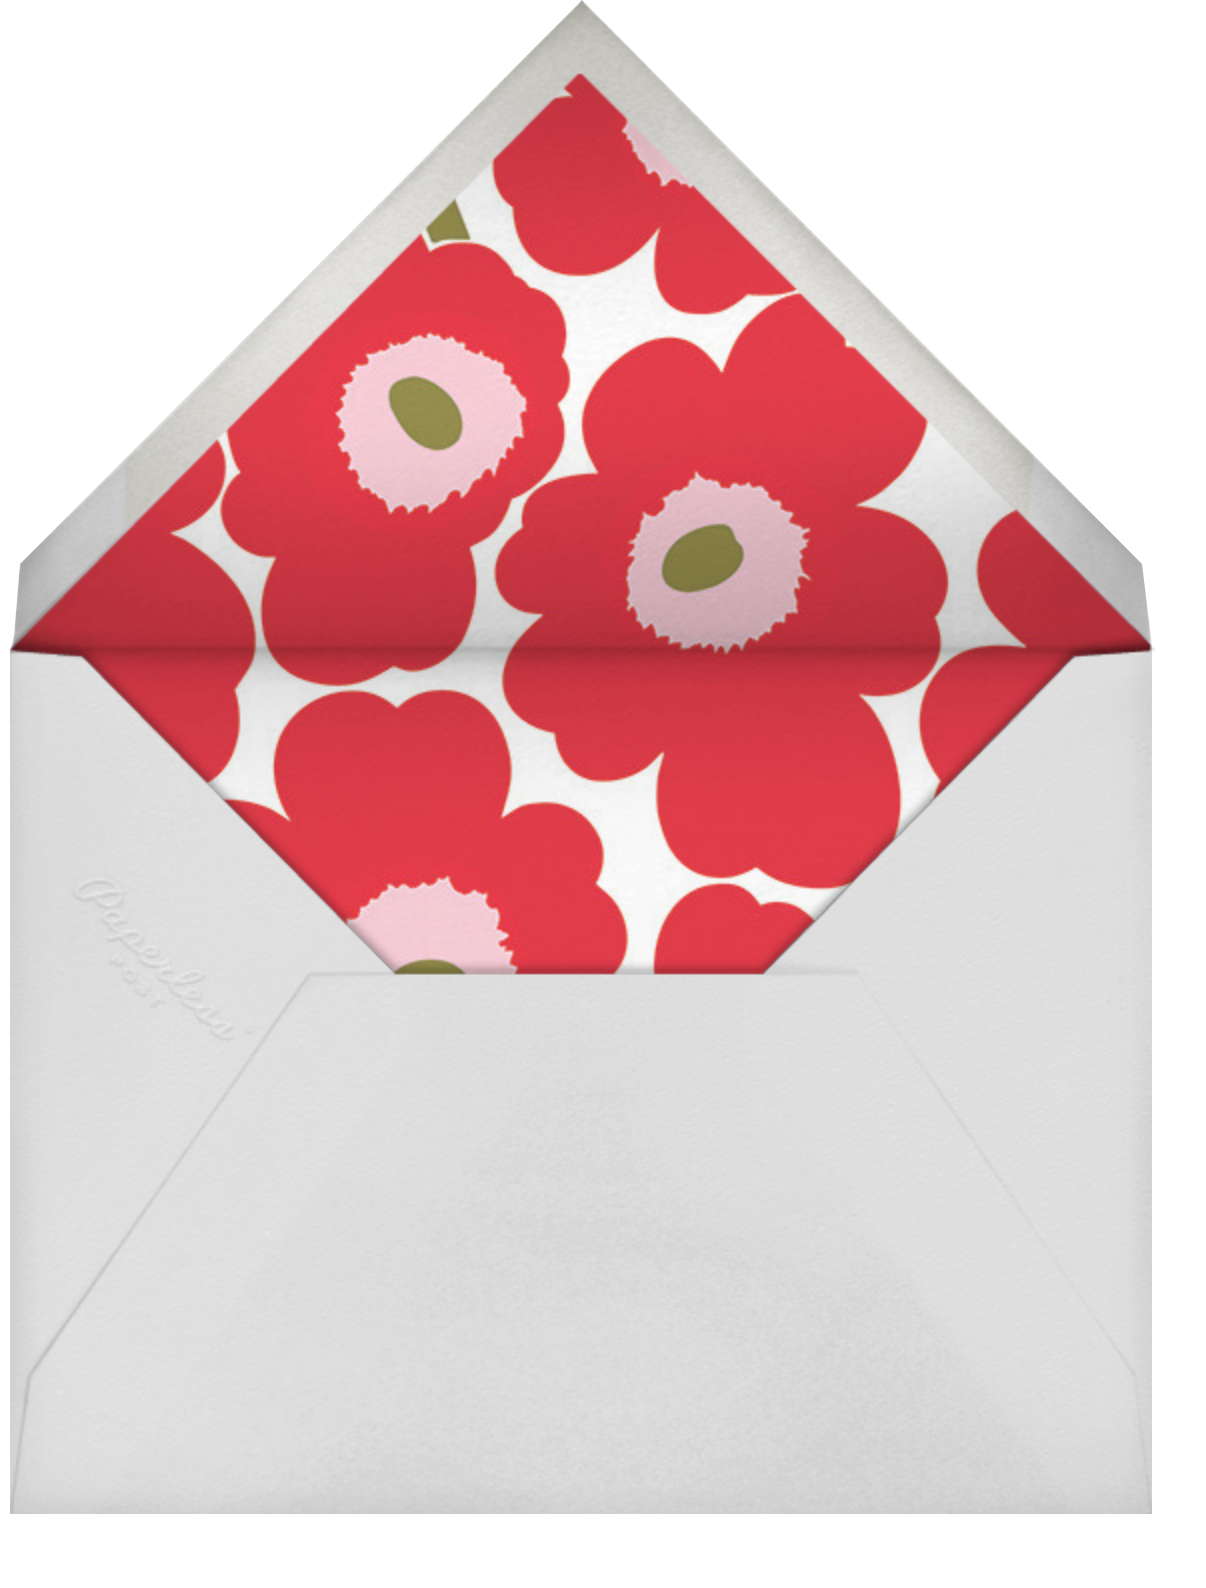 Unikko (Square) - Red/Green - Marimekko - Christmas party - envelope back